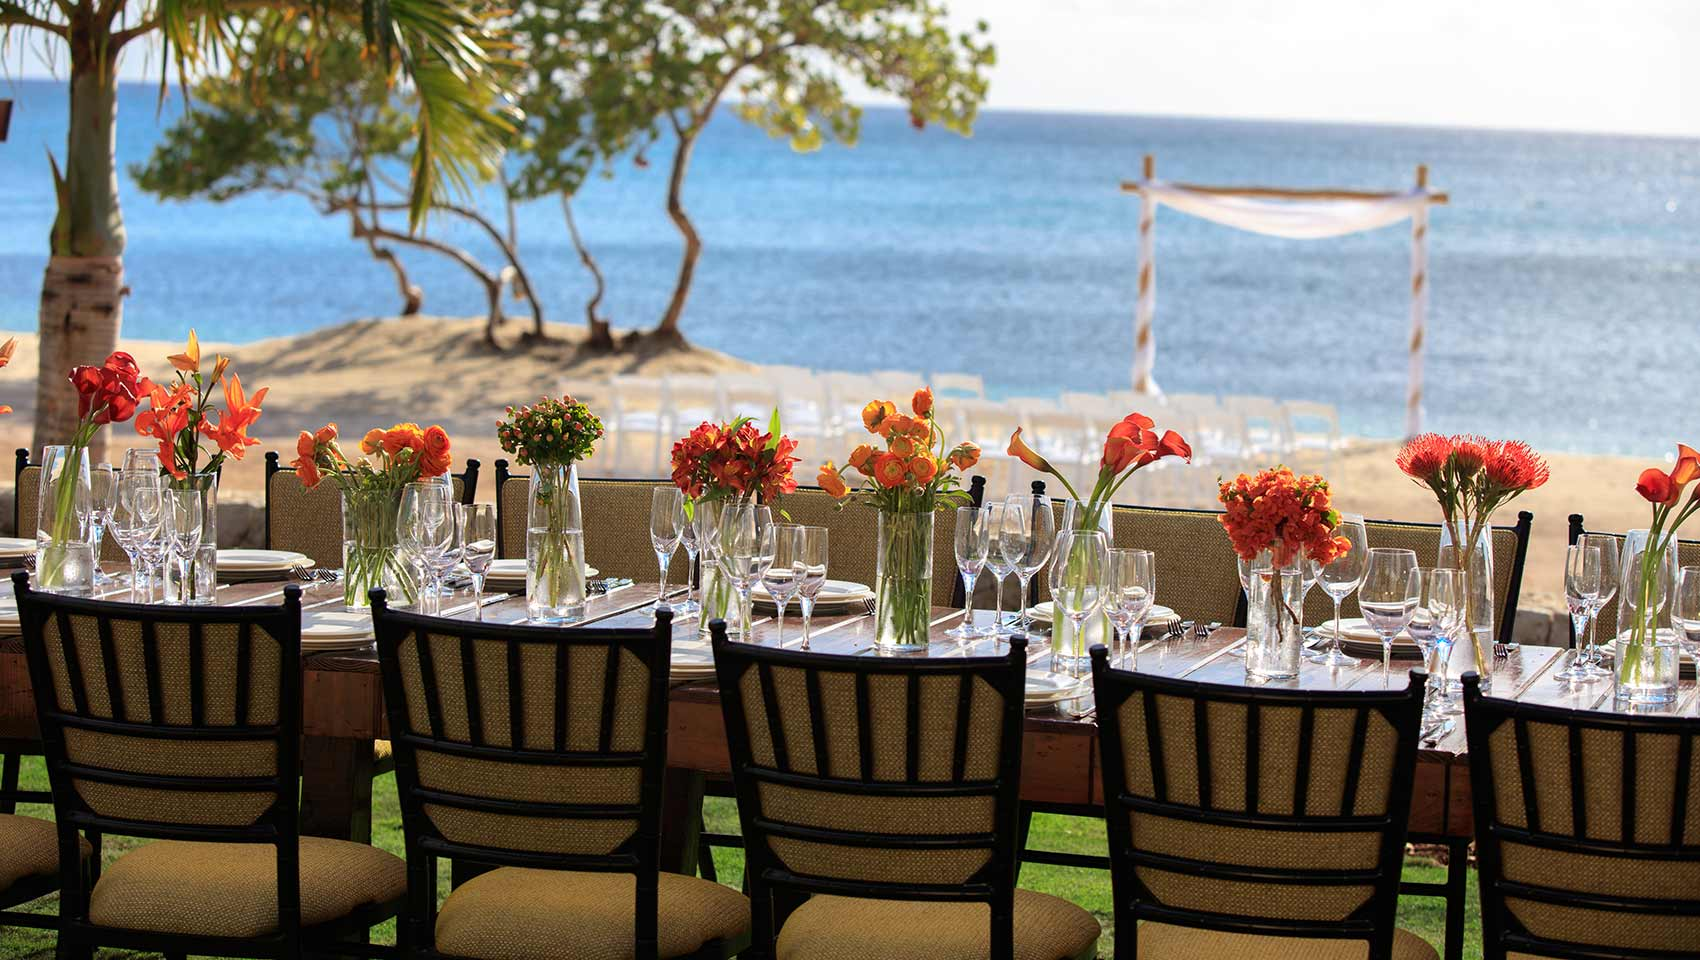 seafire resort beach venue